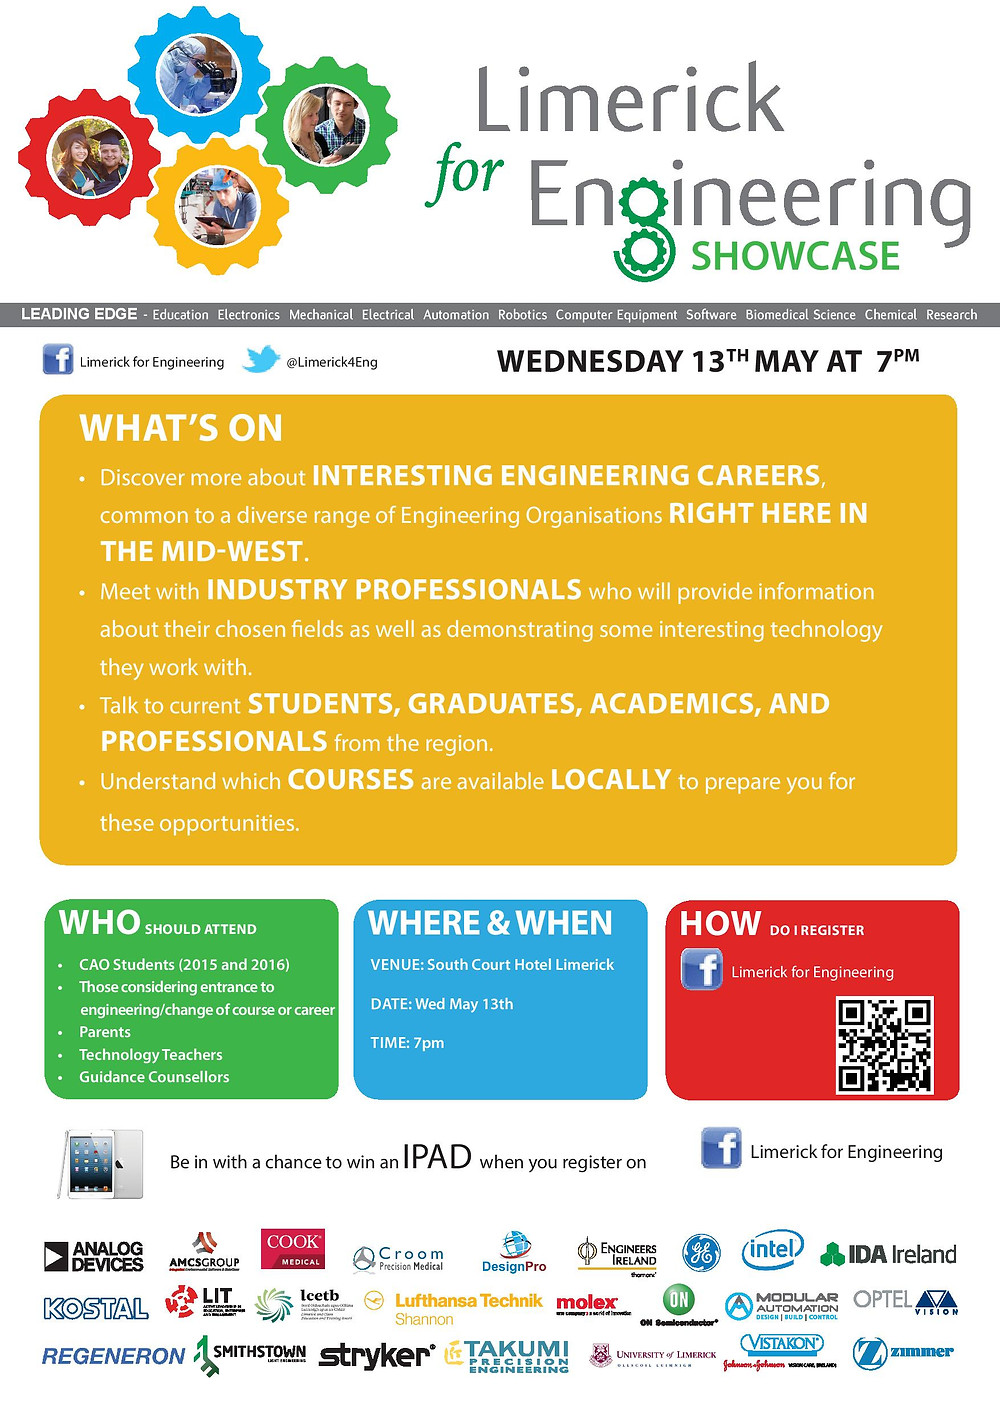 Limerick for Engineering event poster 2015 picture.jpg